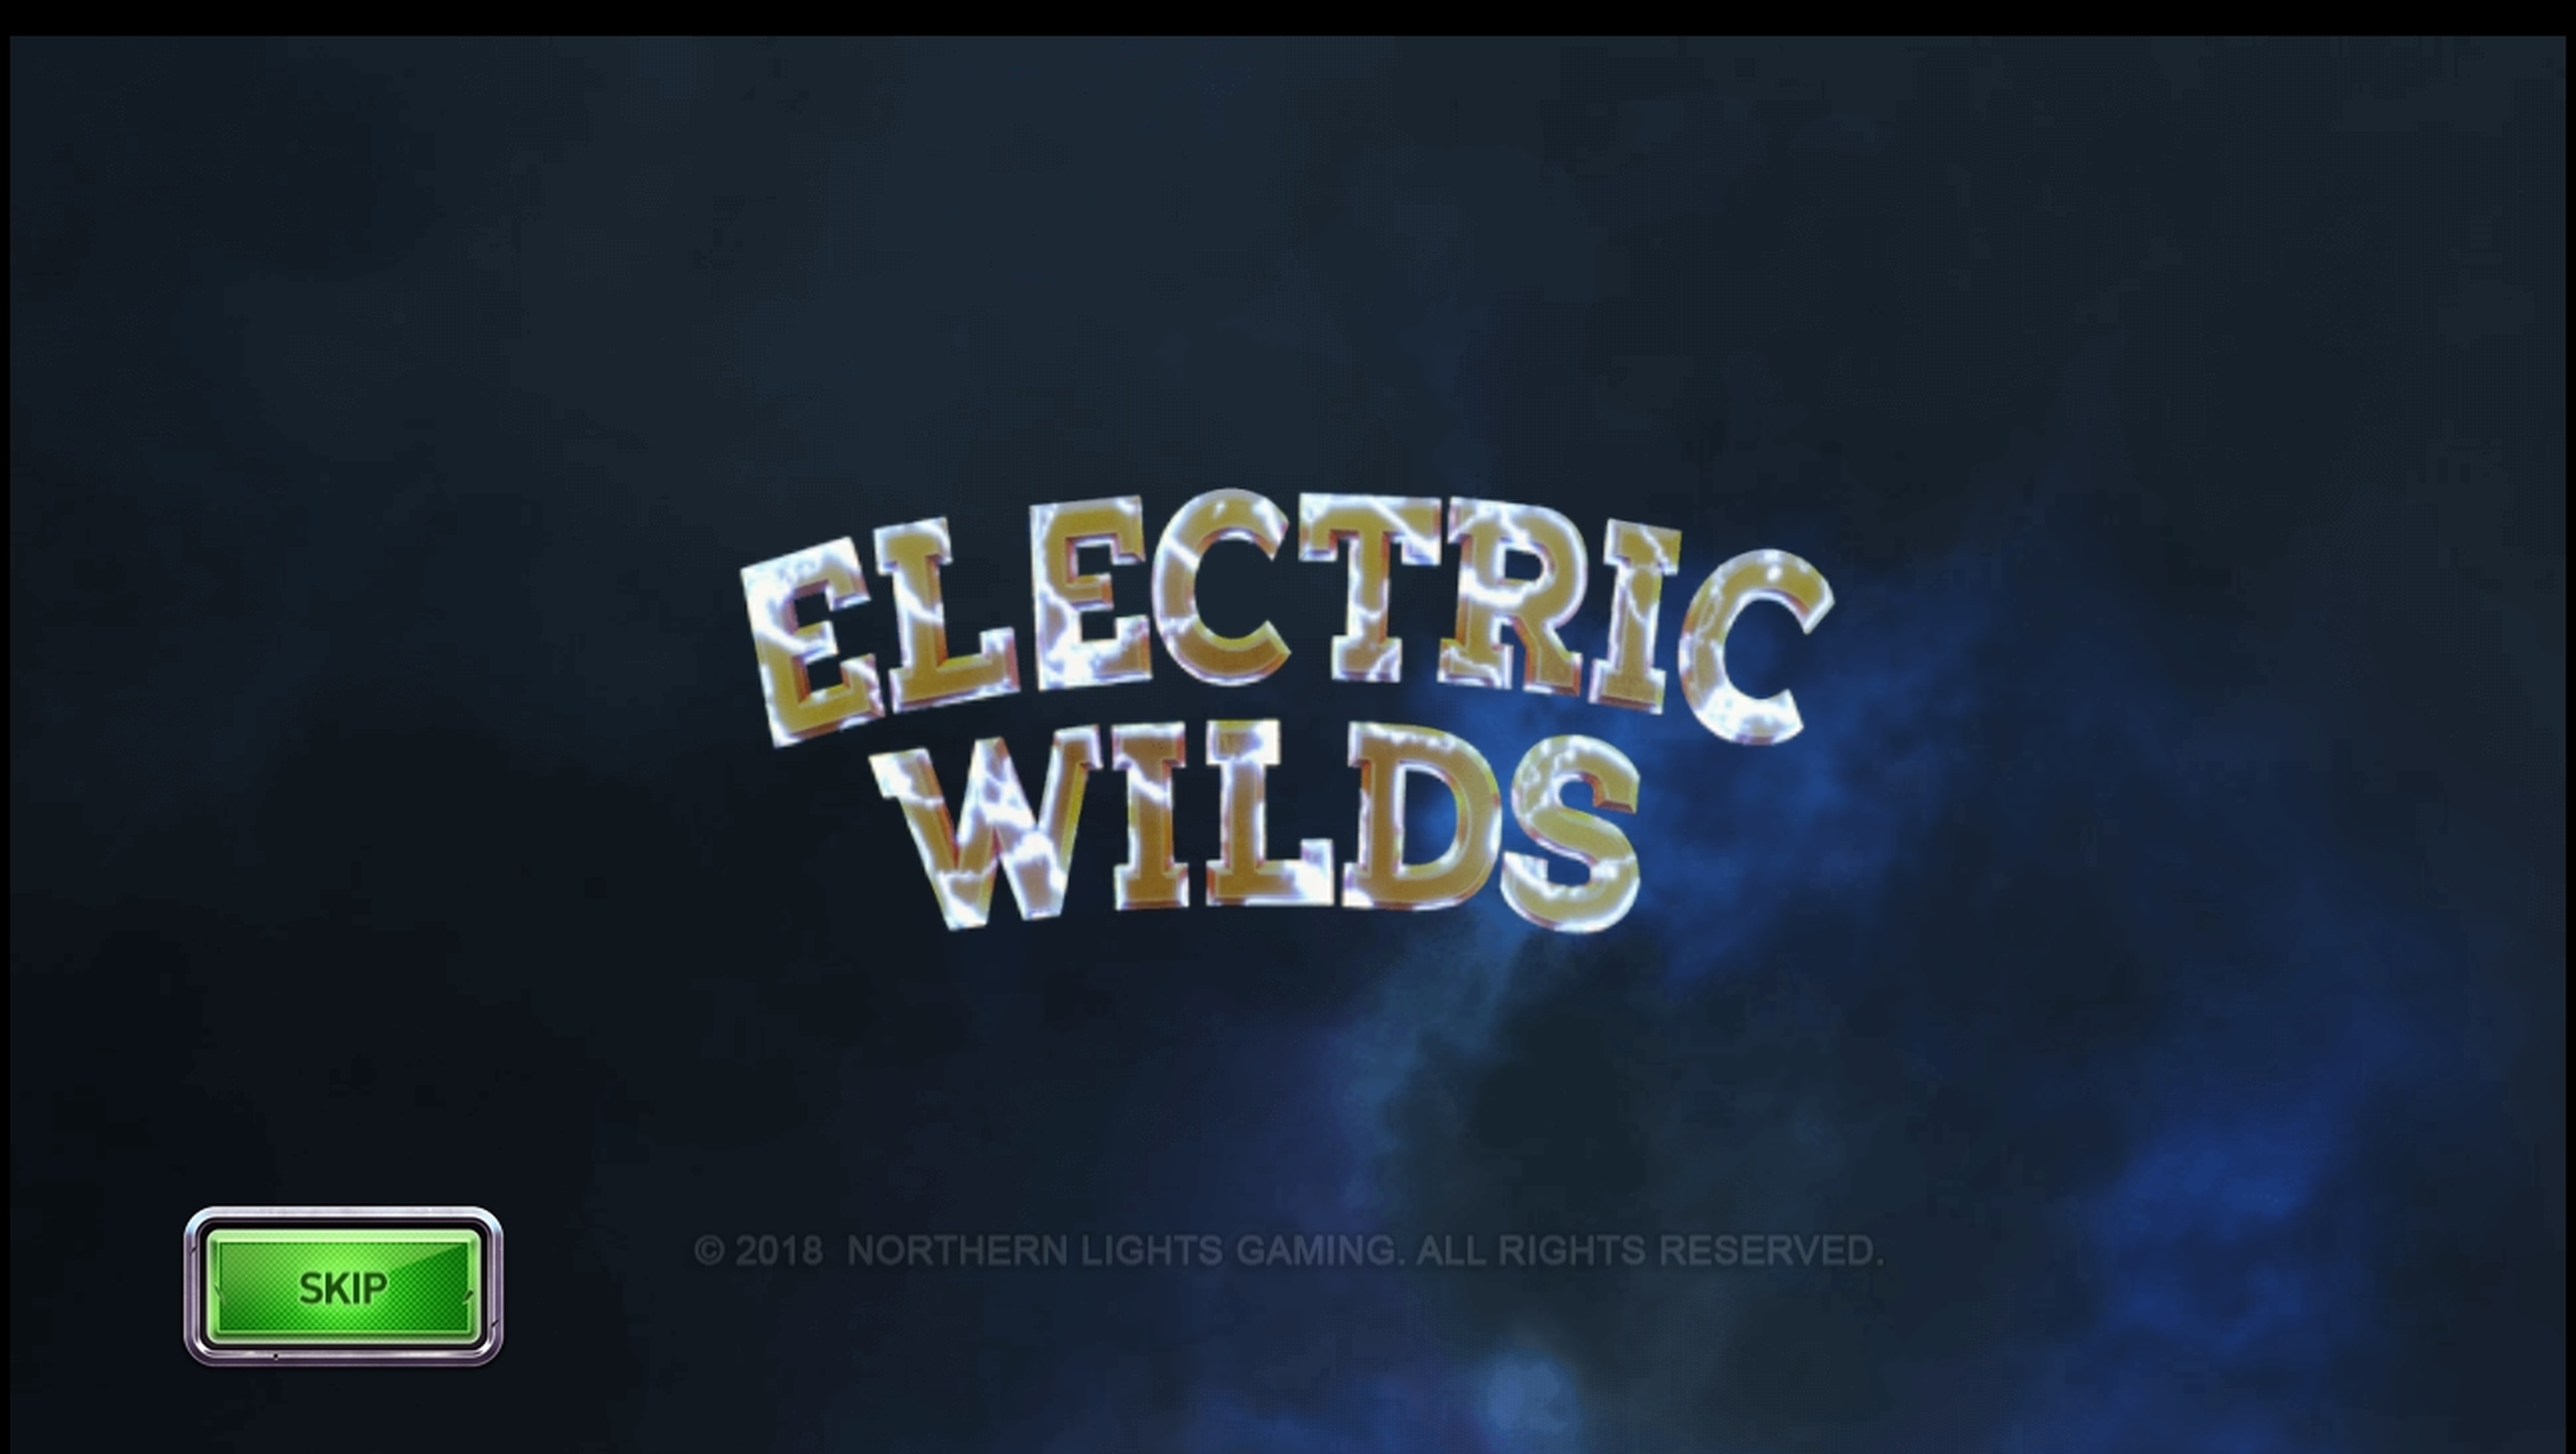 Play Electric Wilds Free Casino Slot Game by Northern Lights Gaming